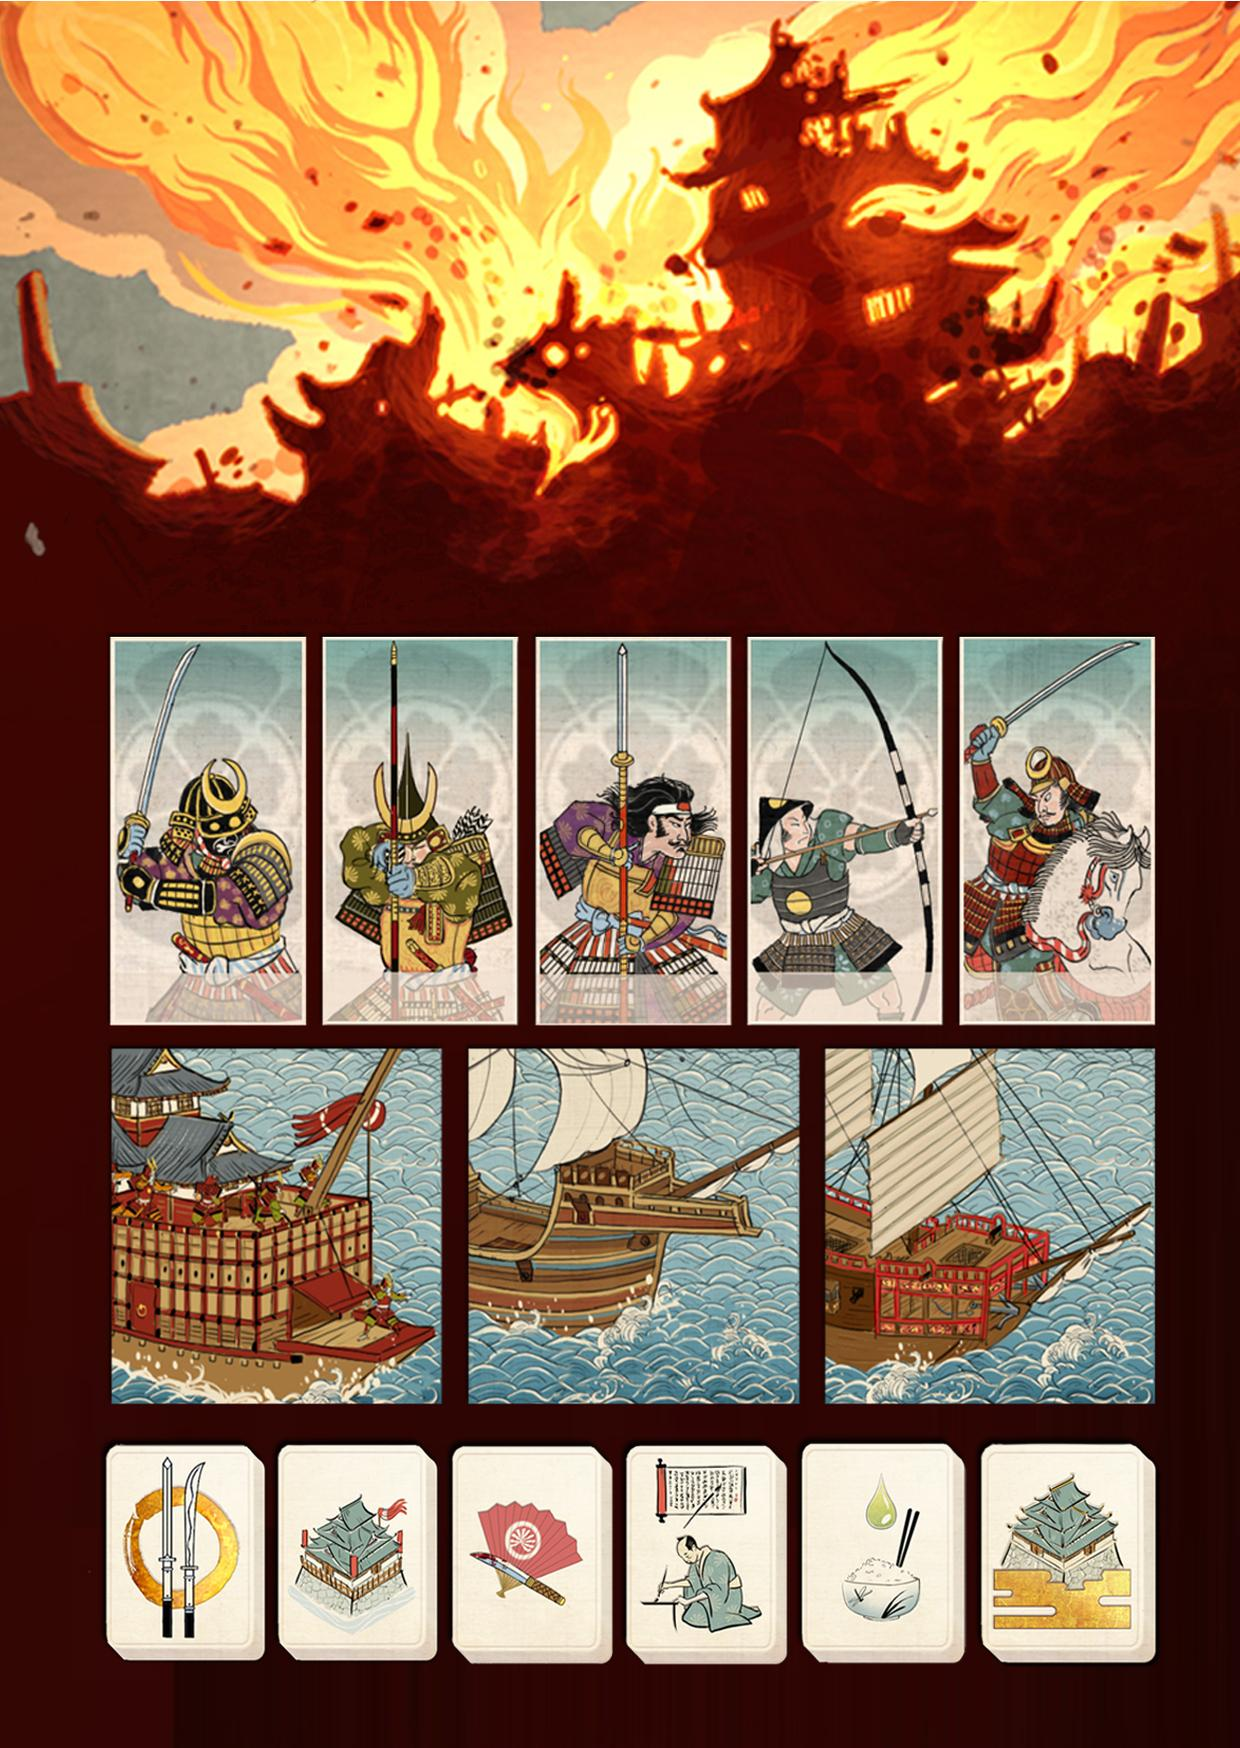 Shogun 2 - Total War on Illustration Served